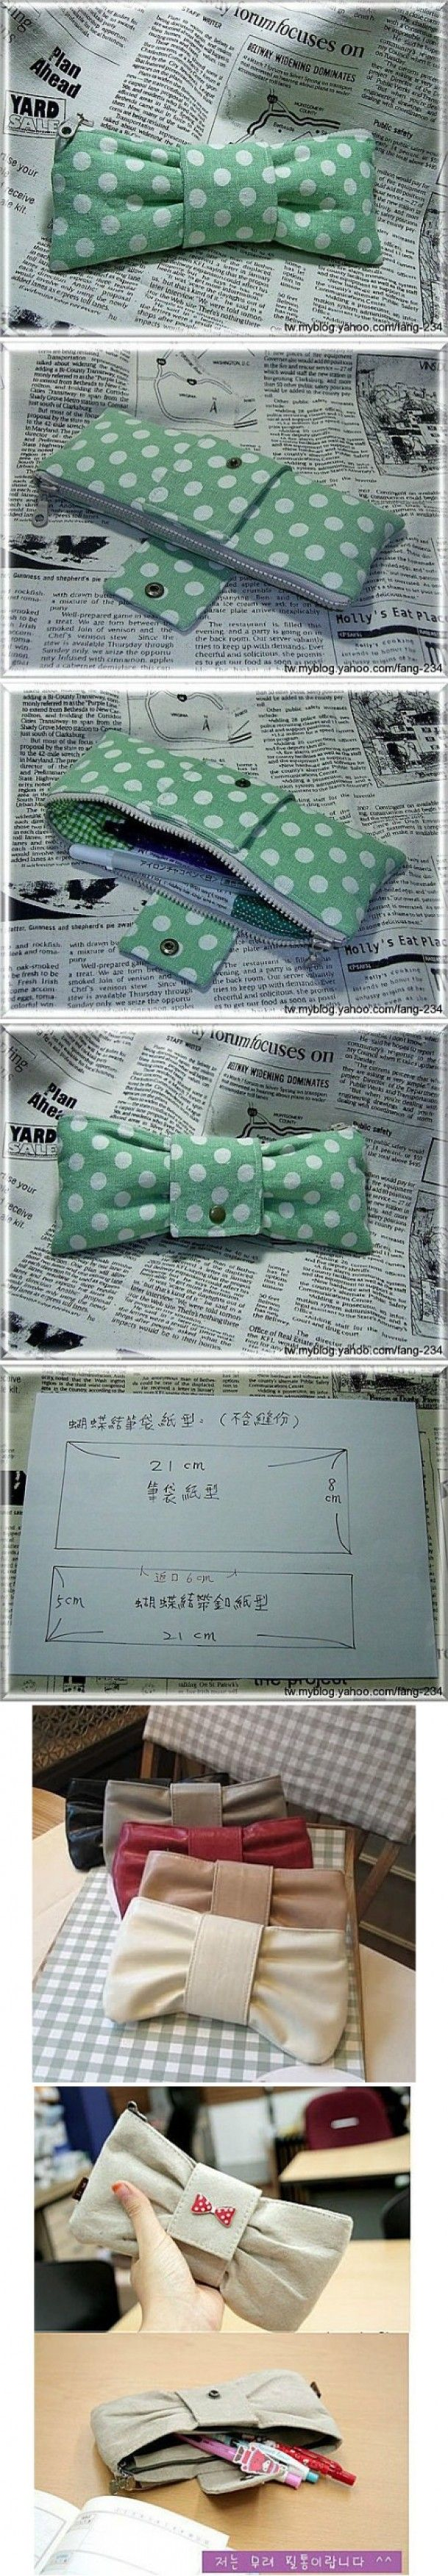 Bow ties are cool. Too bad the instructions are in Dutch. If only I had the Tardis to translate.